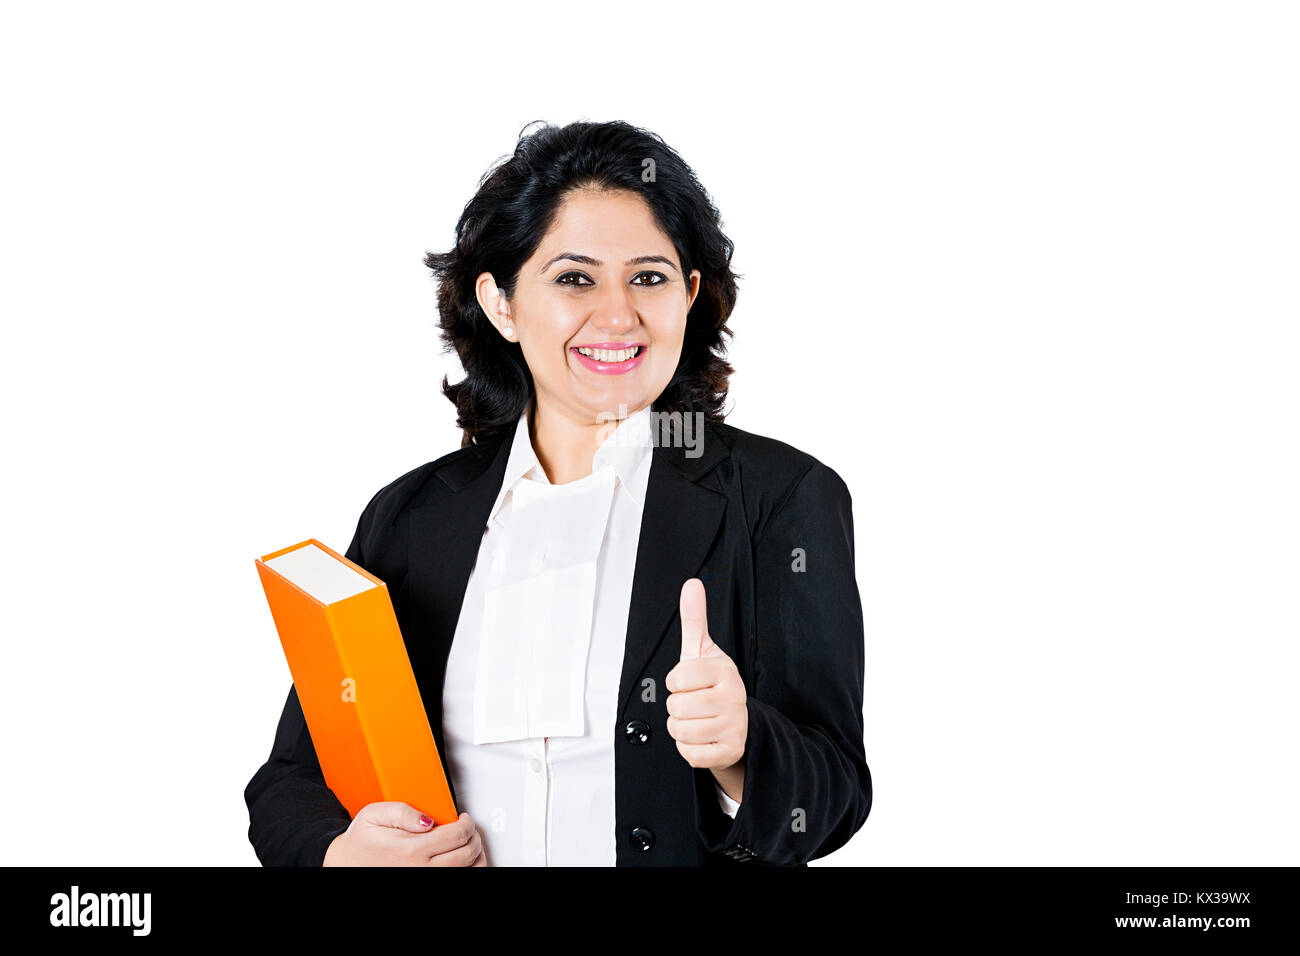 Indian Lawyer Woman Law Book Thumbs Up Success Stock Photo Alamy The site is in full compliance with 18 usc section 2257. https www alamy com stock photo indian lawyer woman law book thumbs up success 170948006 html